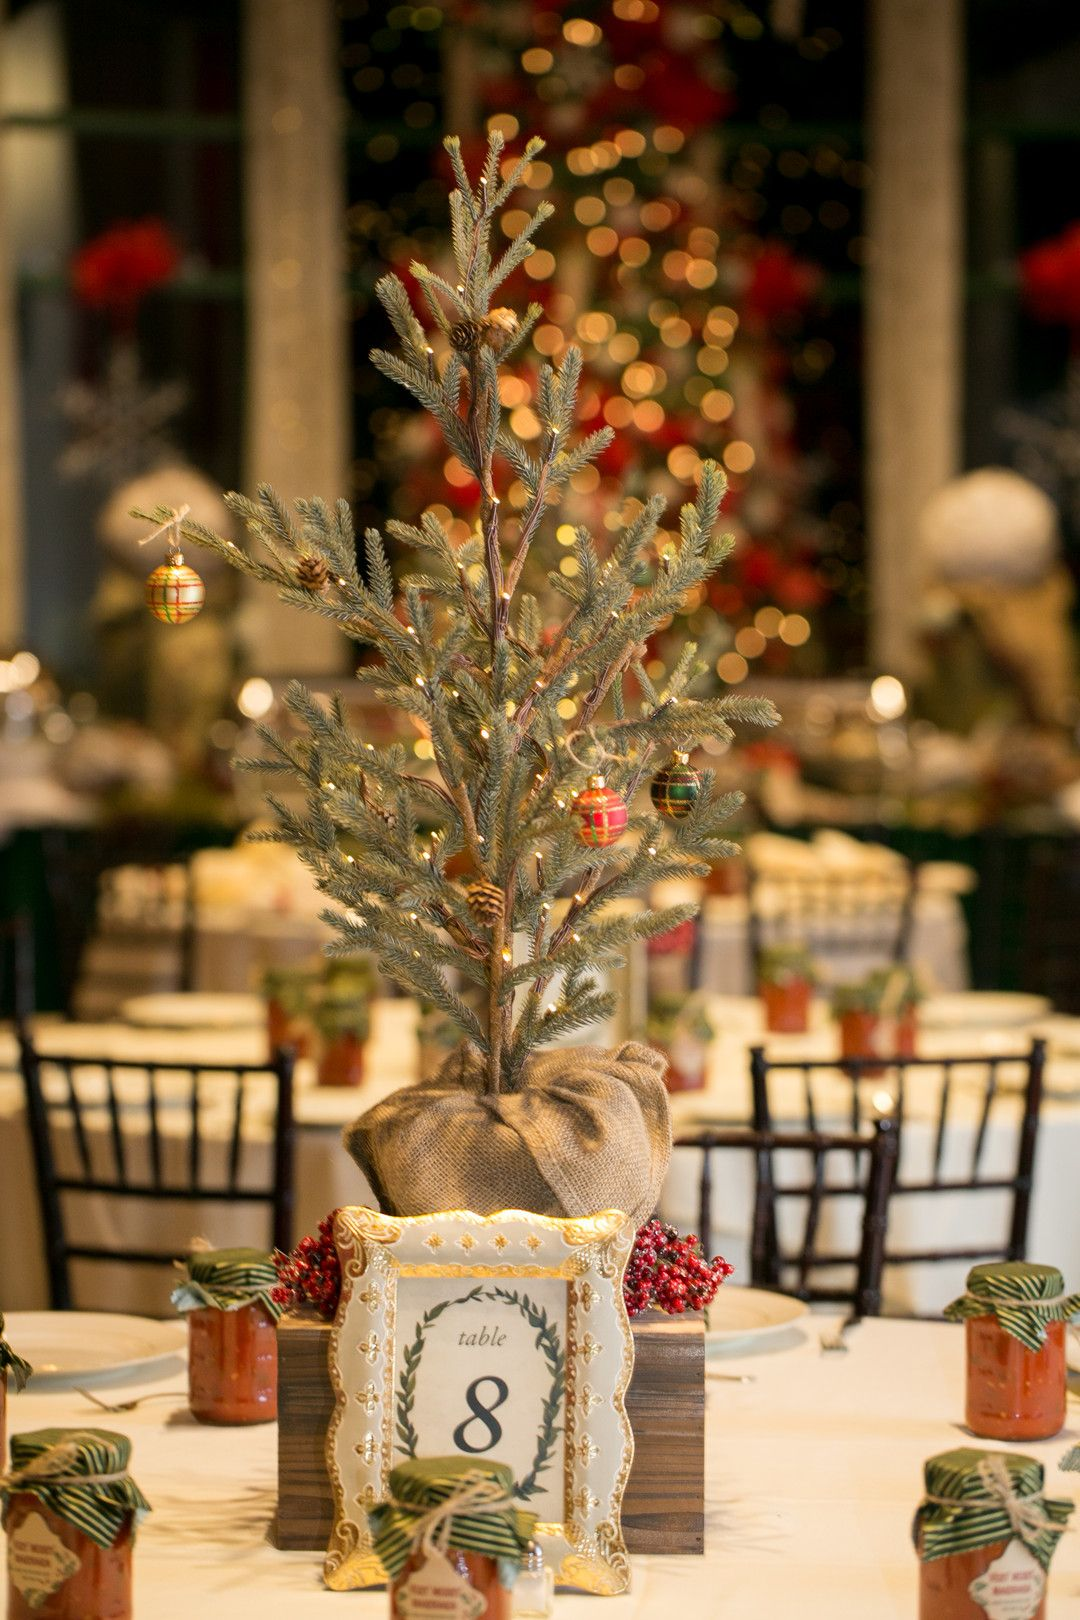 December Wedding Ideas You NEED To See! - Glittery Bride